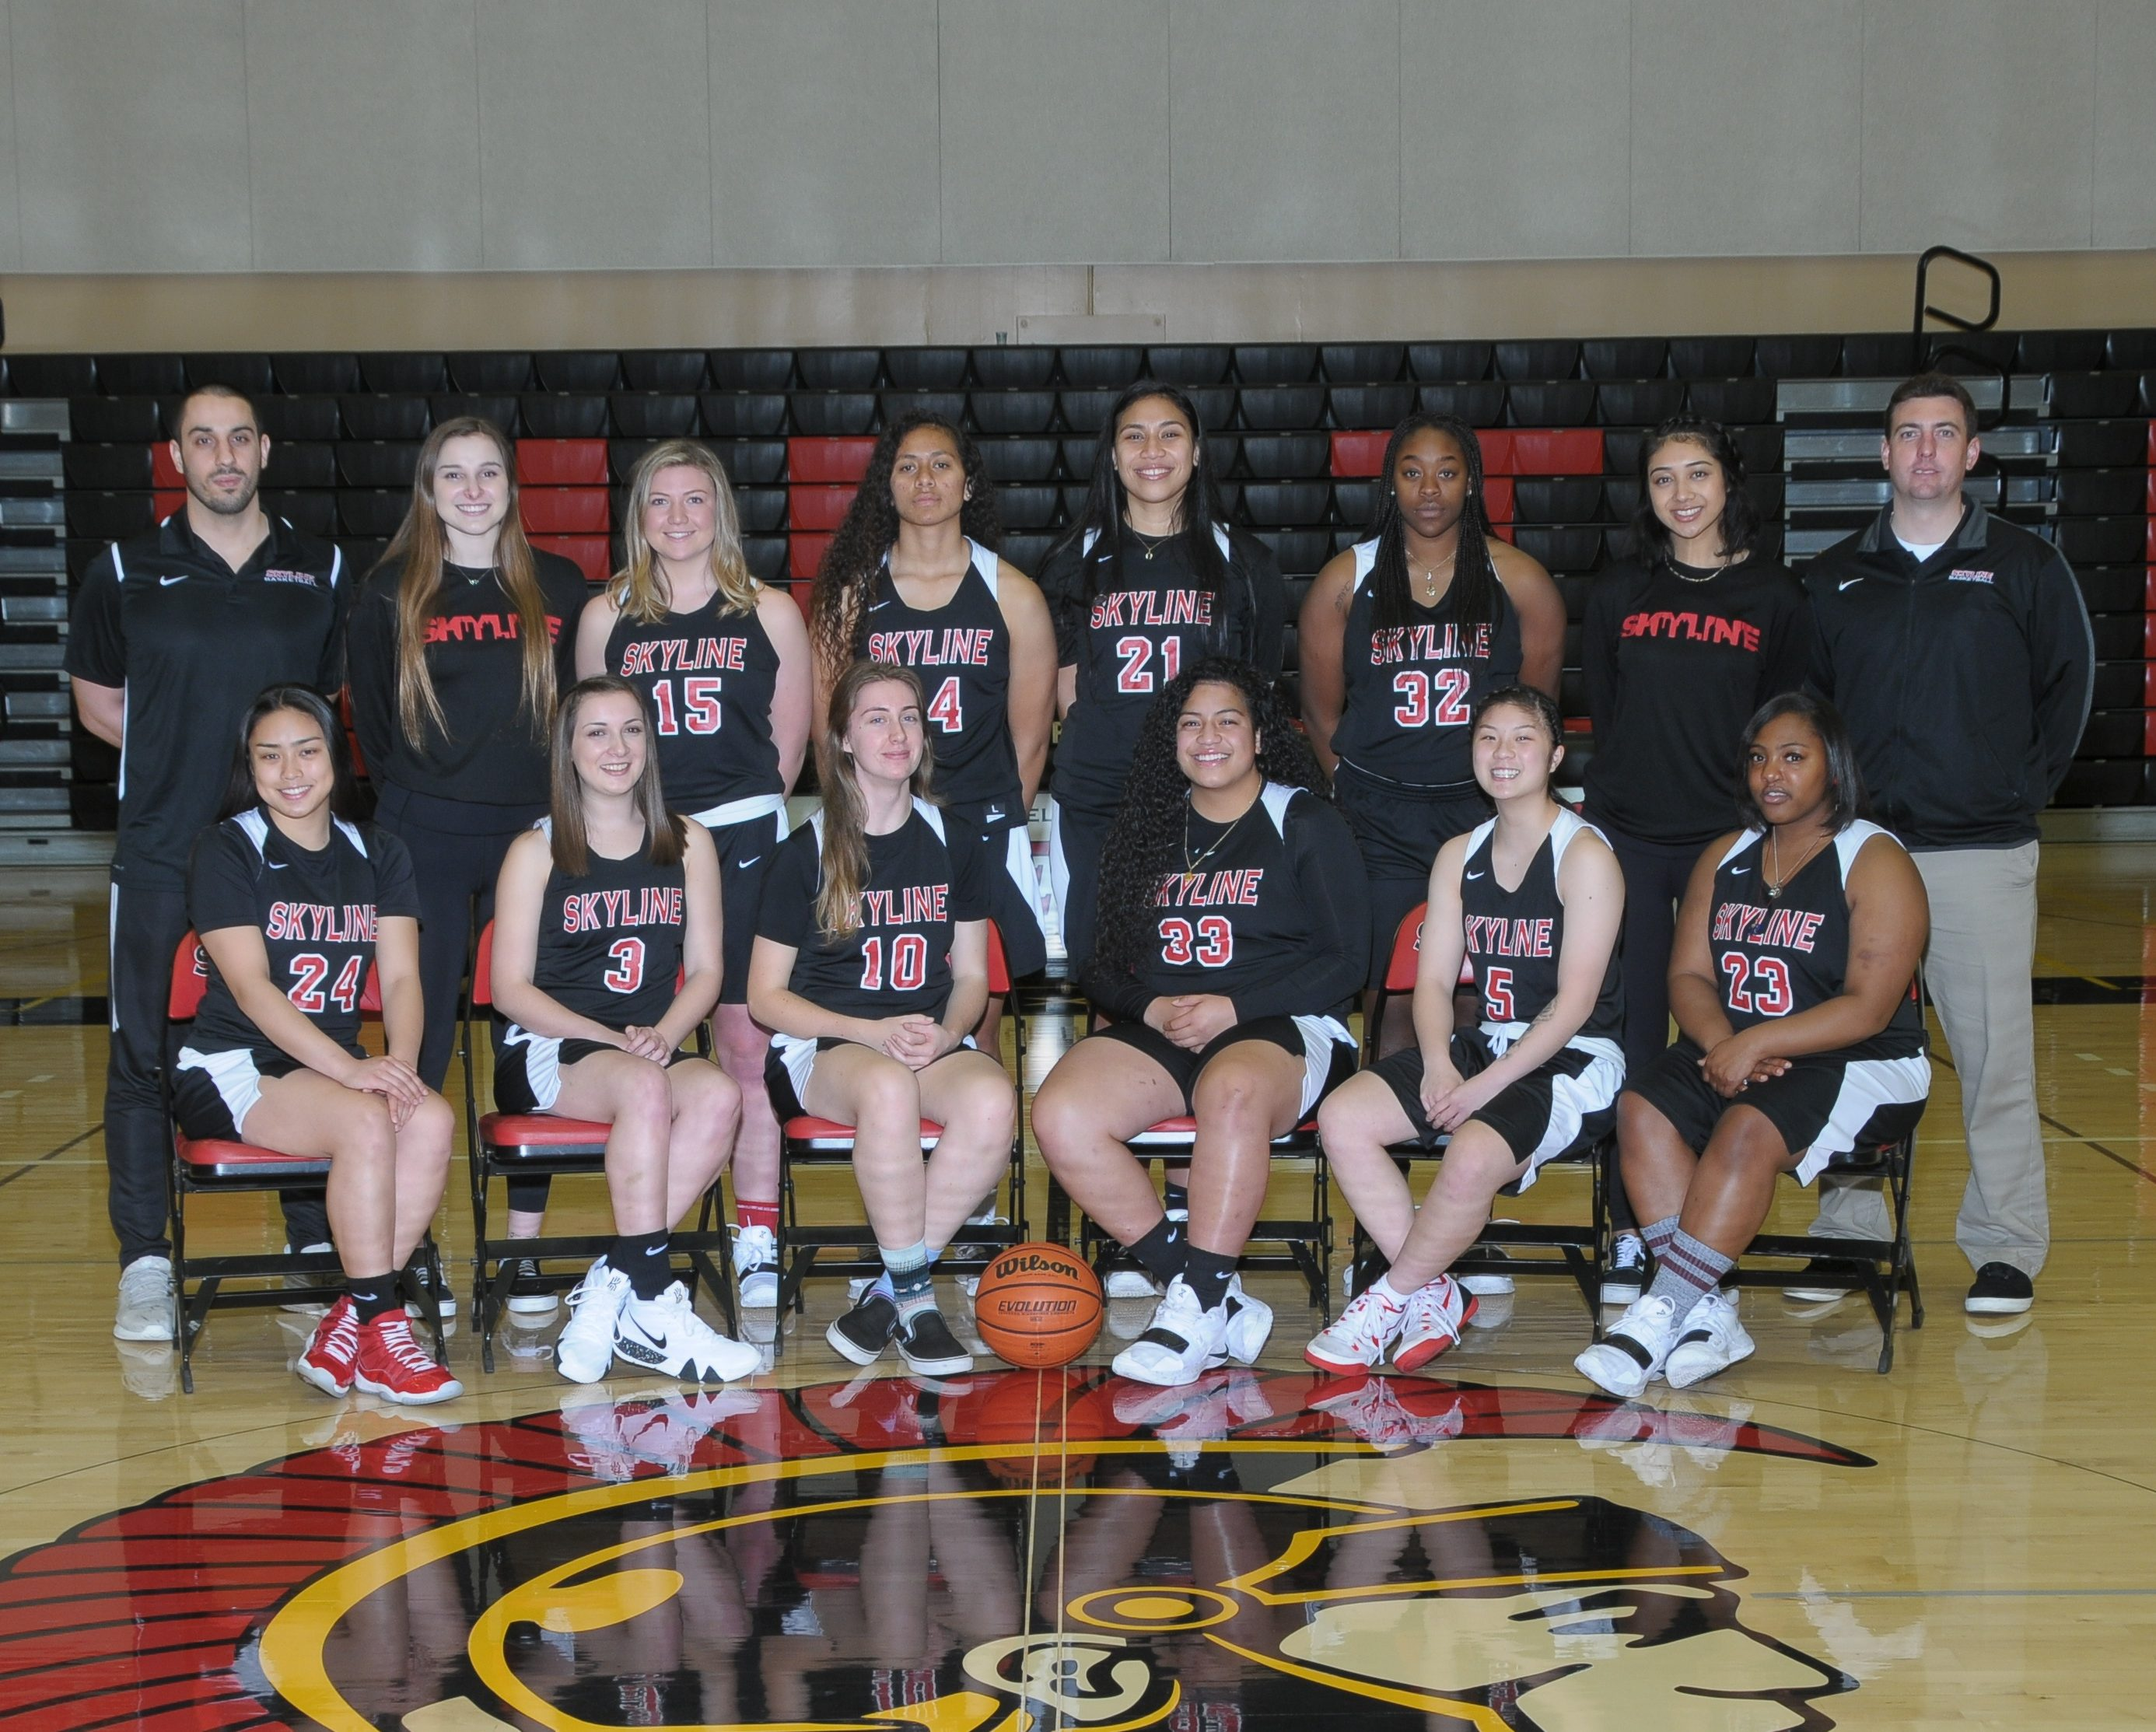 women's basketball team photo